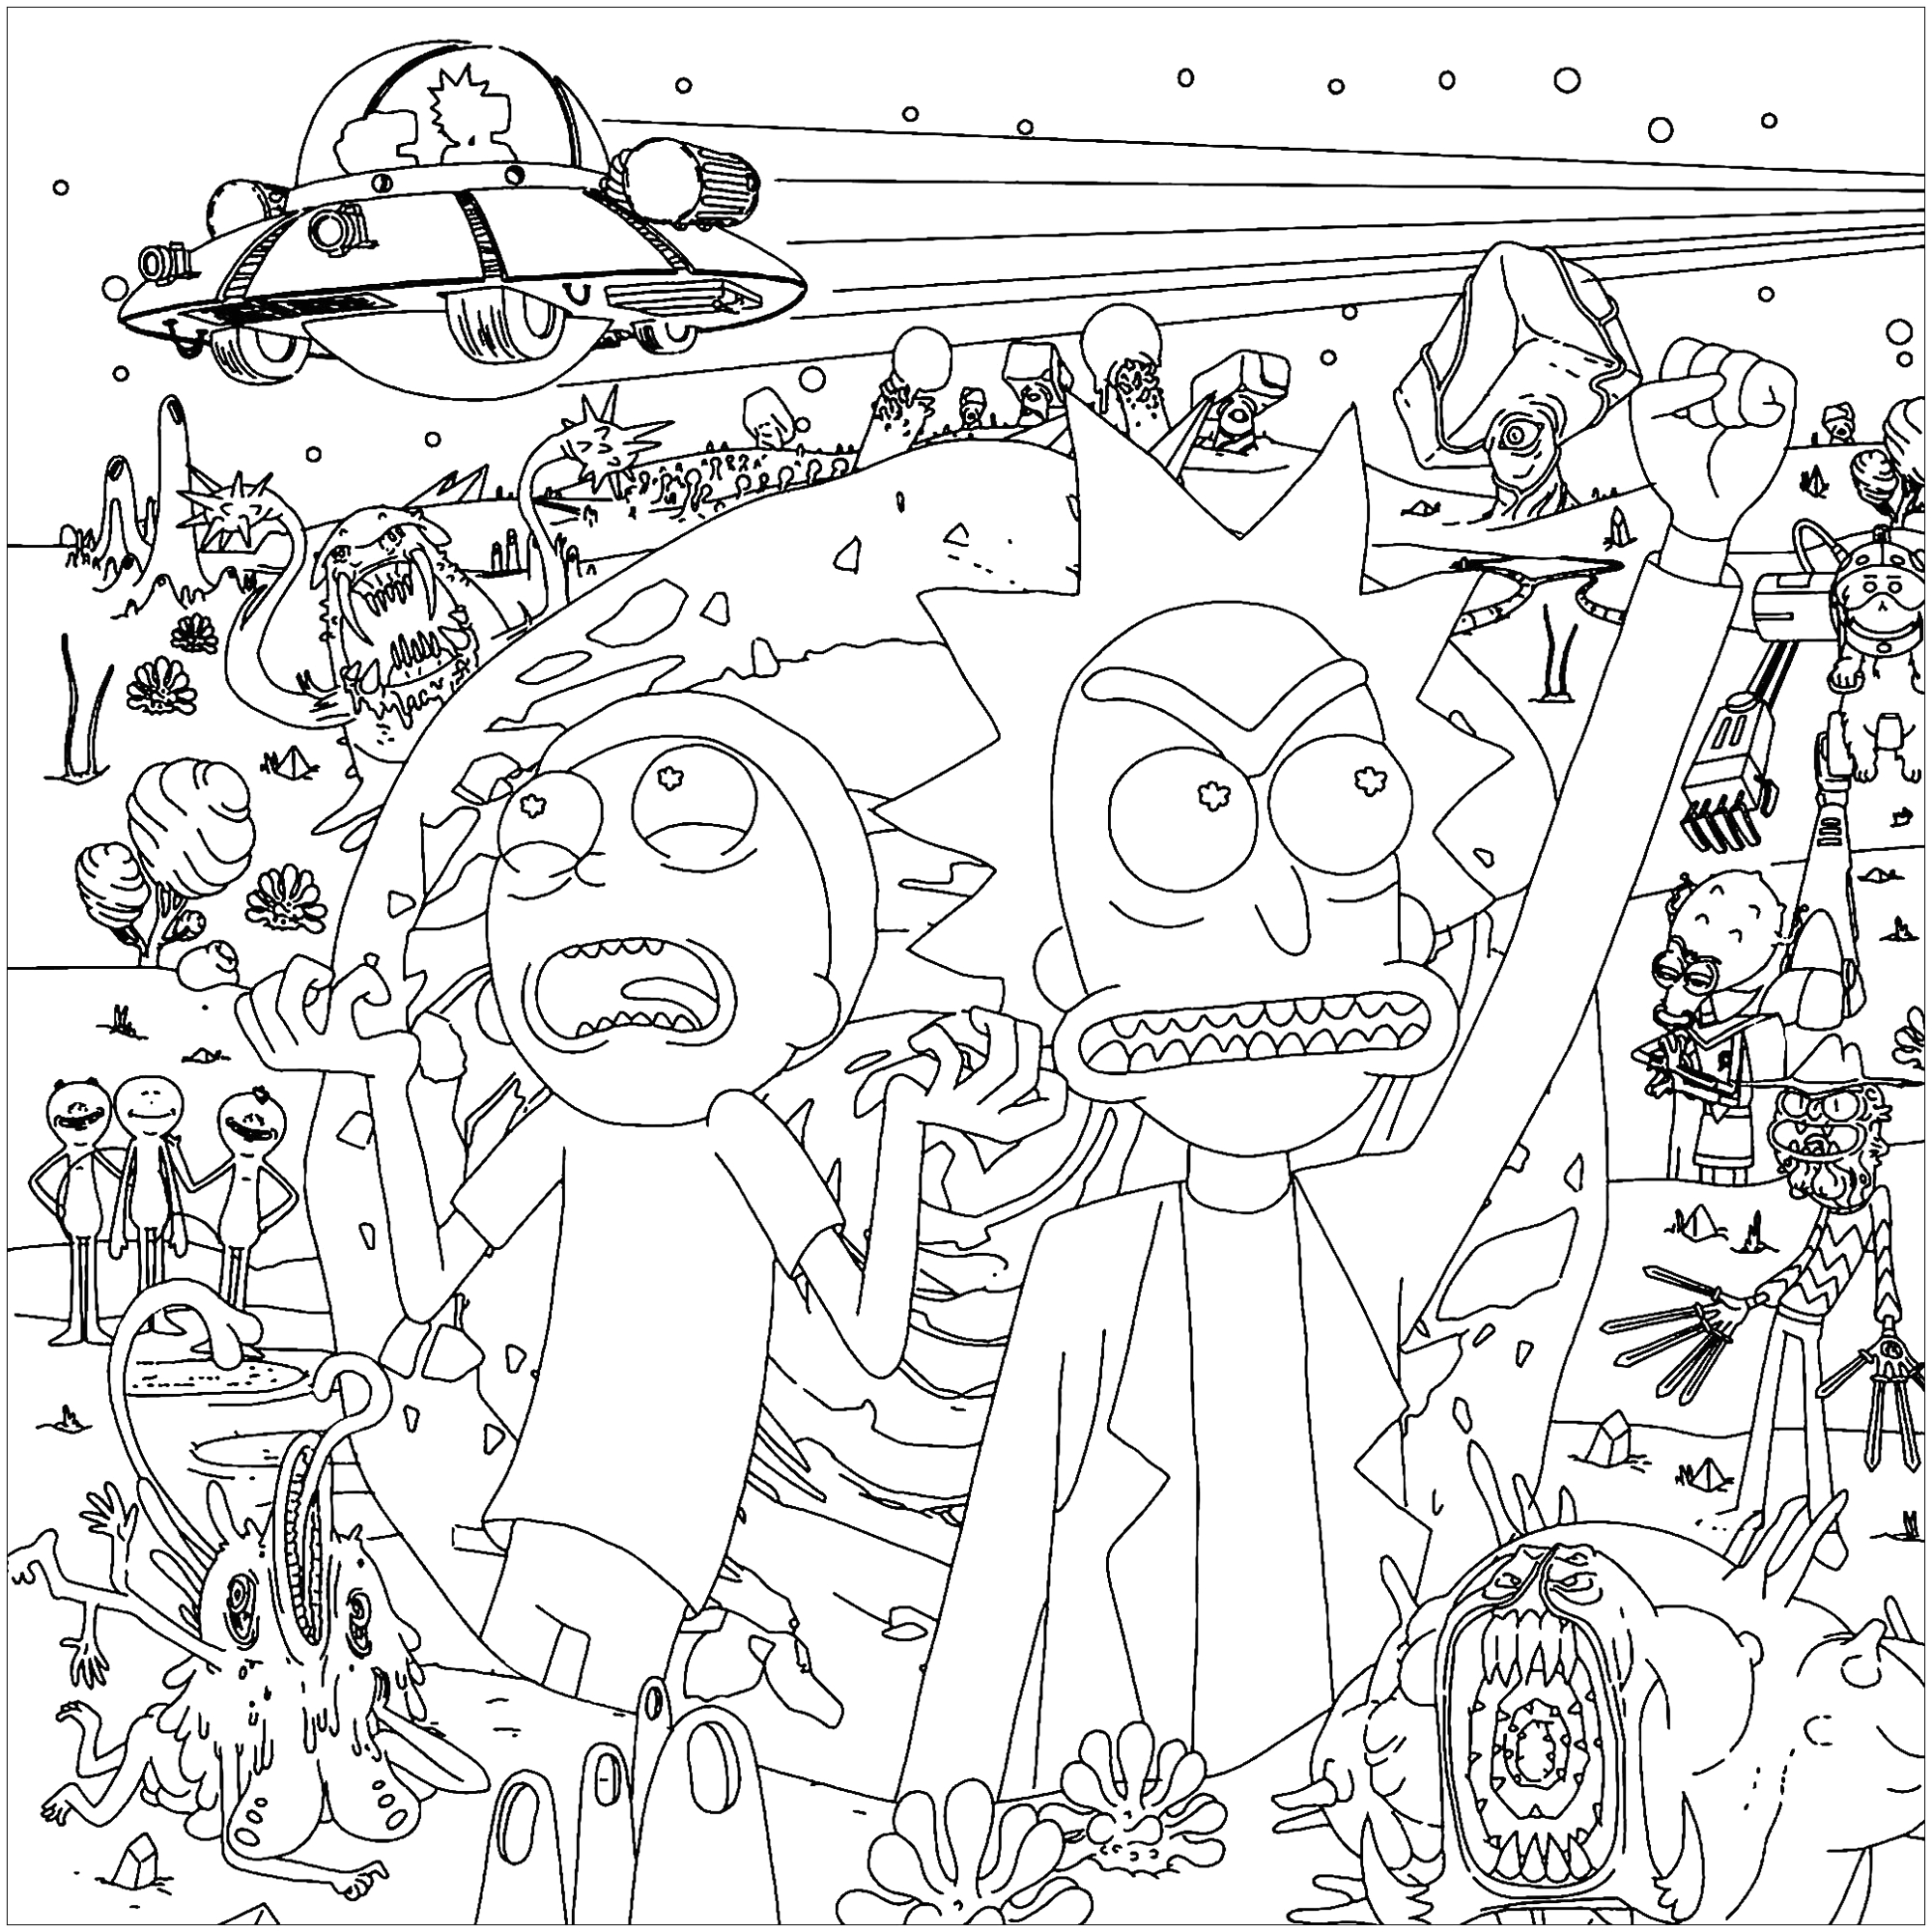 Free Printable Rick and Morty Coloring Pages Rick and Morty Coloring Pages Best Coloring Pages for Kids